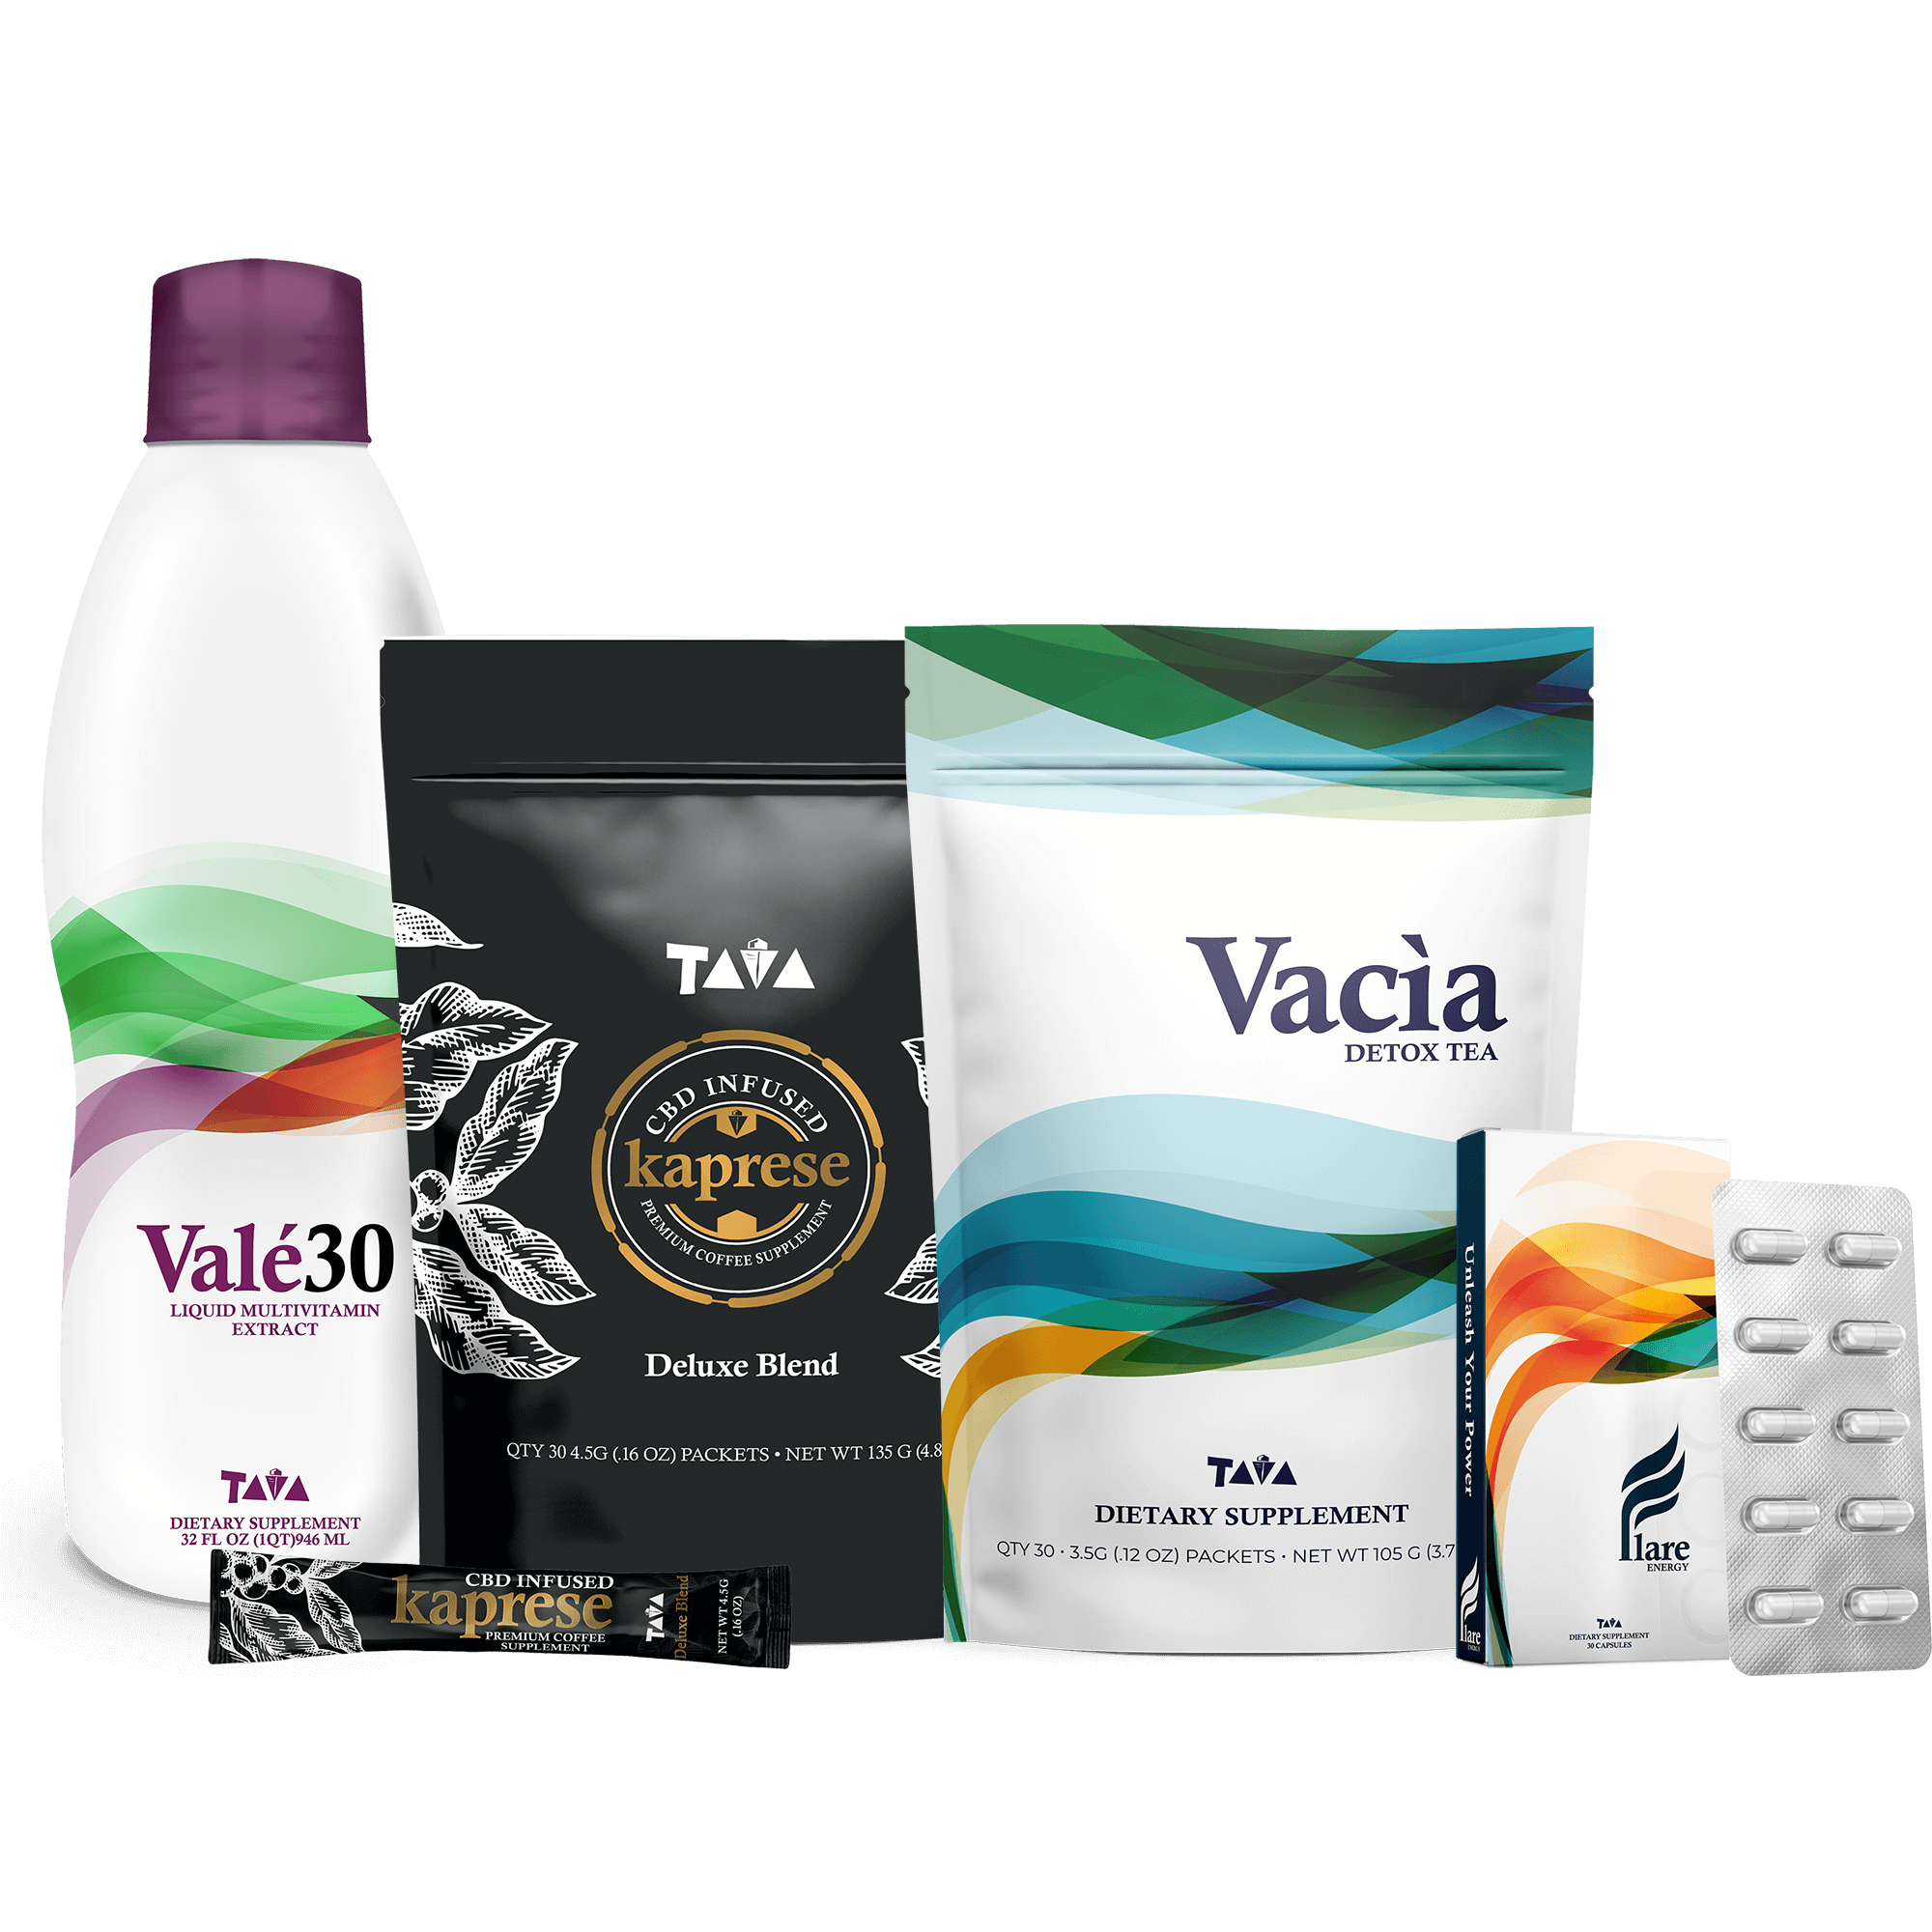 Click Here To Discover The TAVA Lifestyle Products!